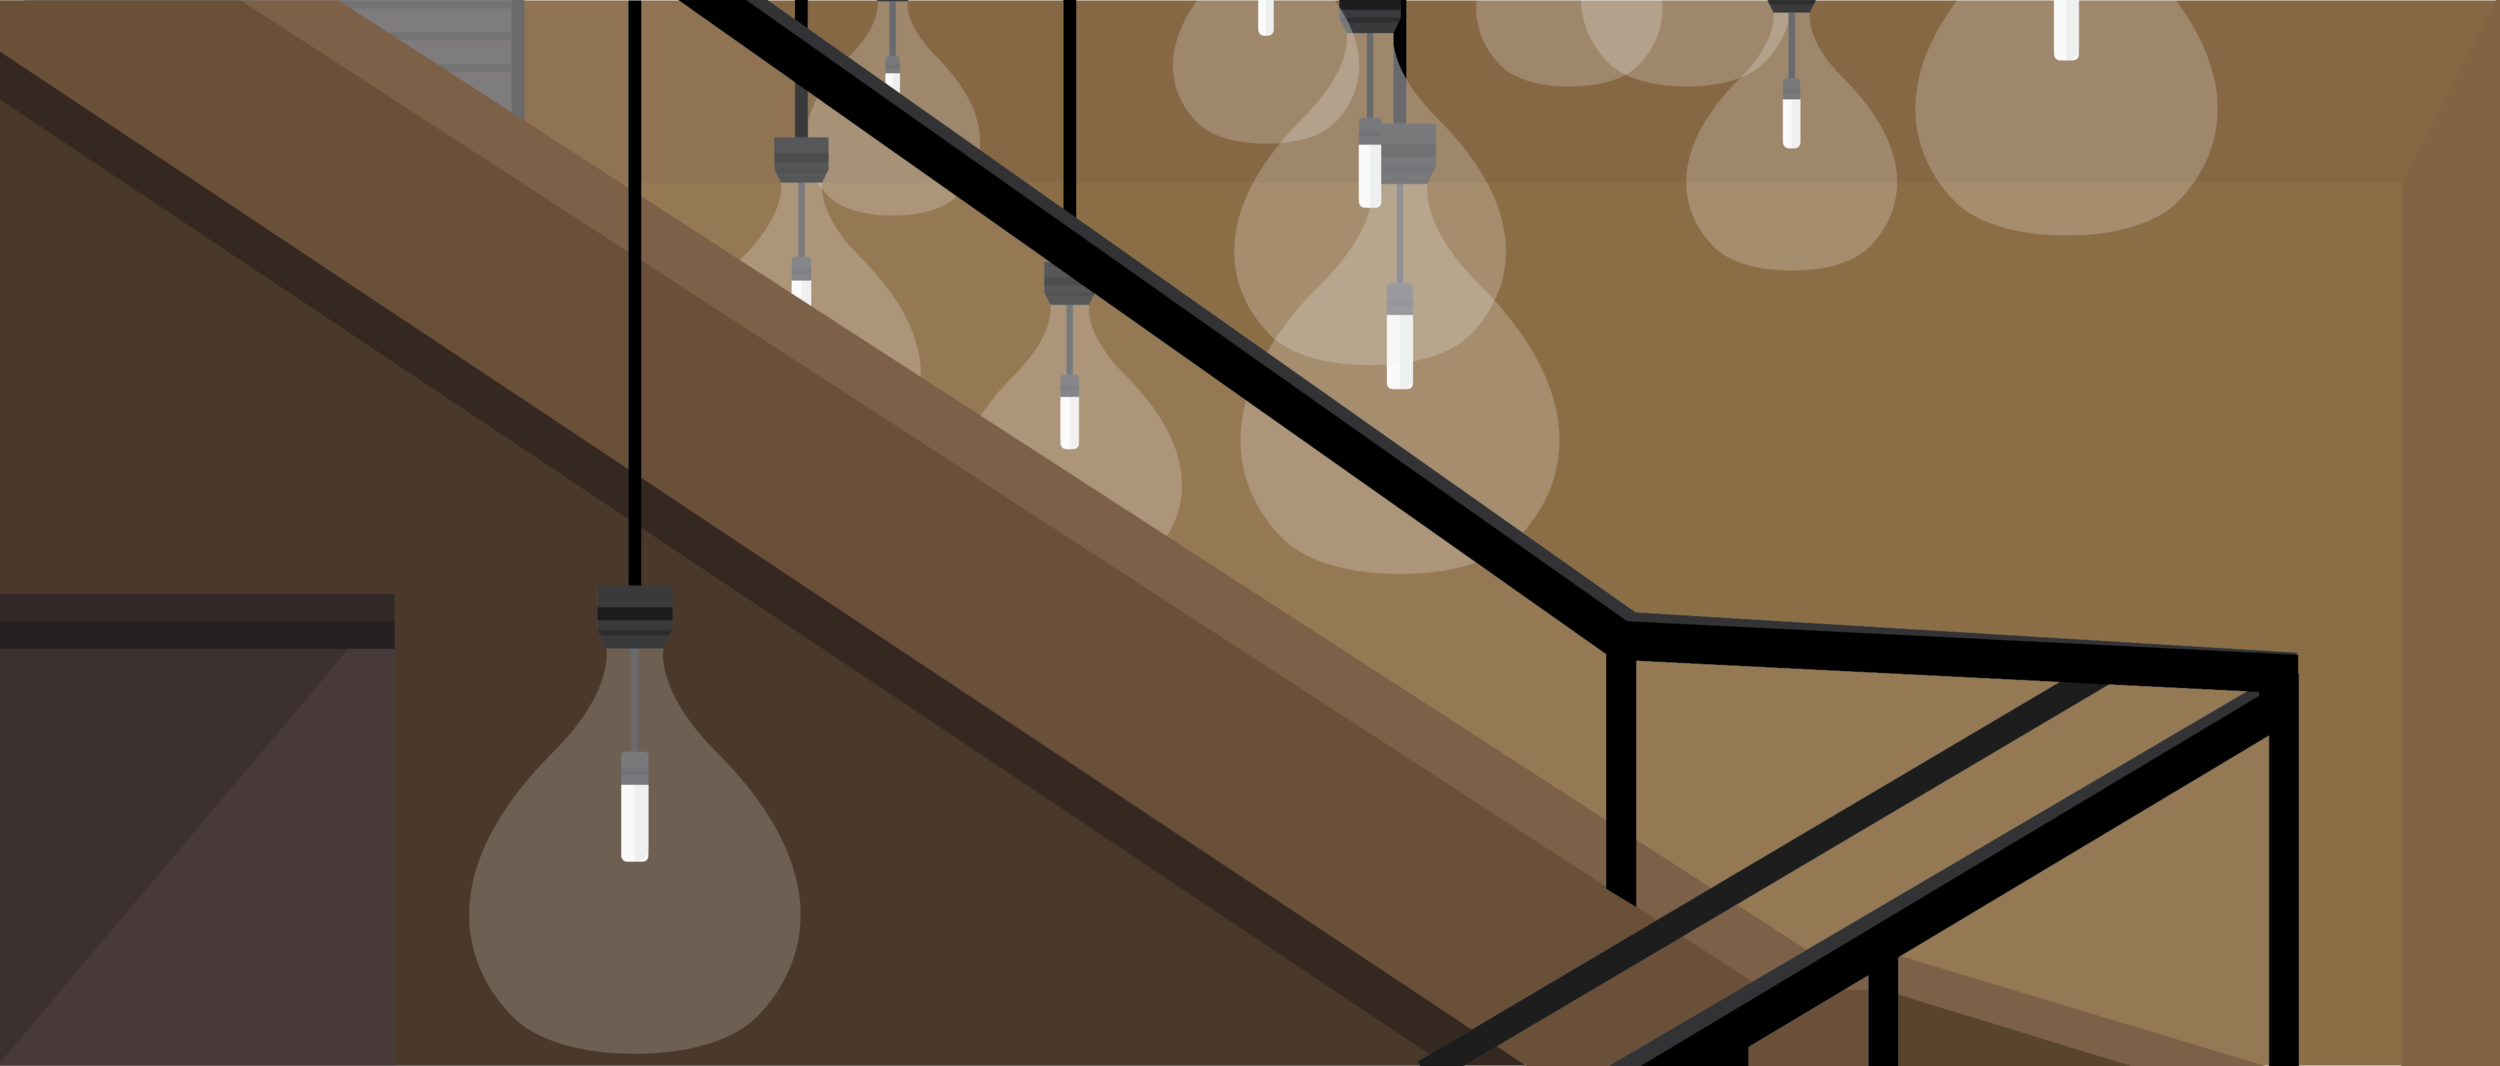 CL_HolidayVideo_Environment_Staircase_00a1-01.png